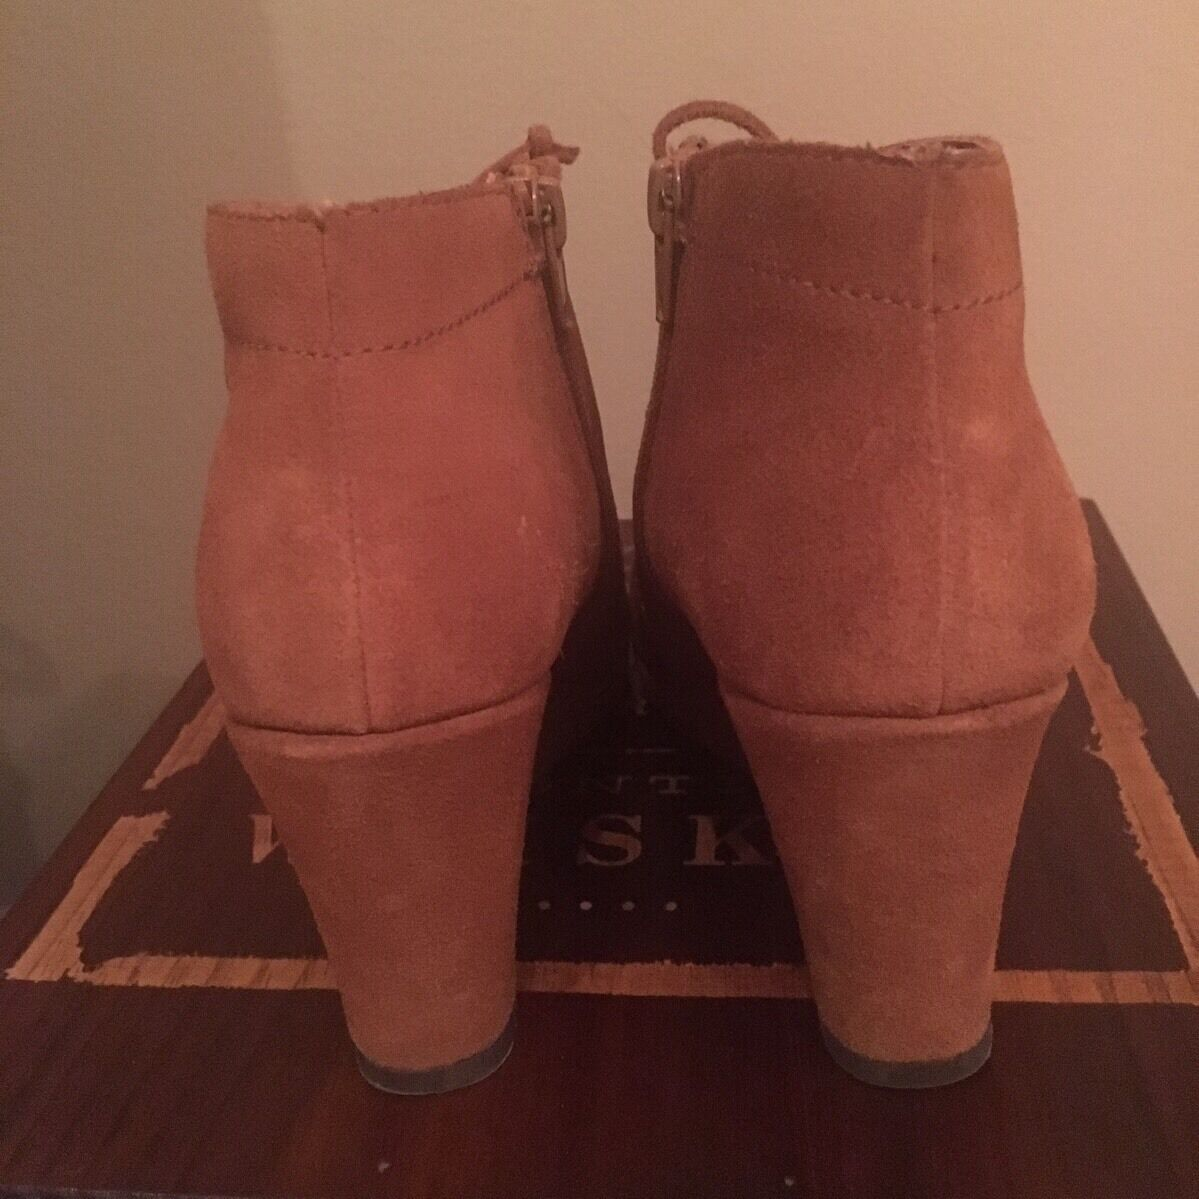 NWOT DV by Dolce Vita Lace Braun Suede Leder Wedge Lace Vita Up Ankle Boot Größe 7 2302f6